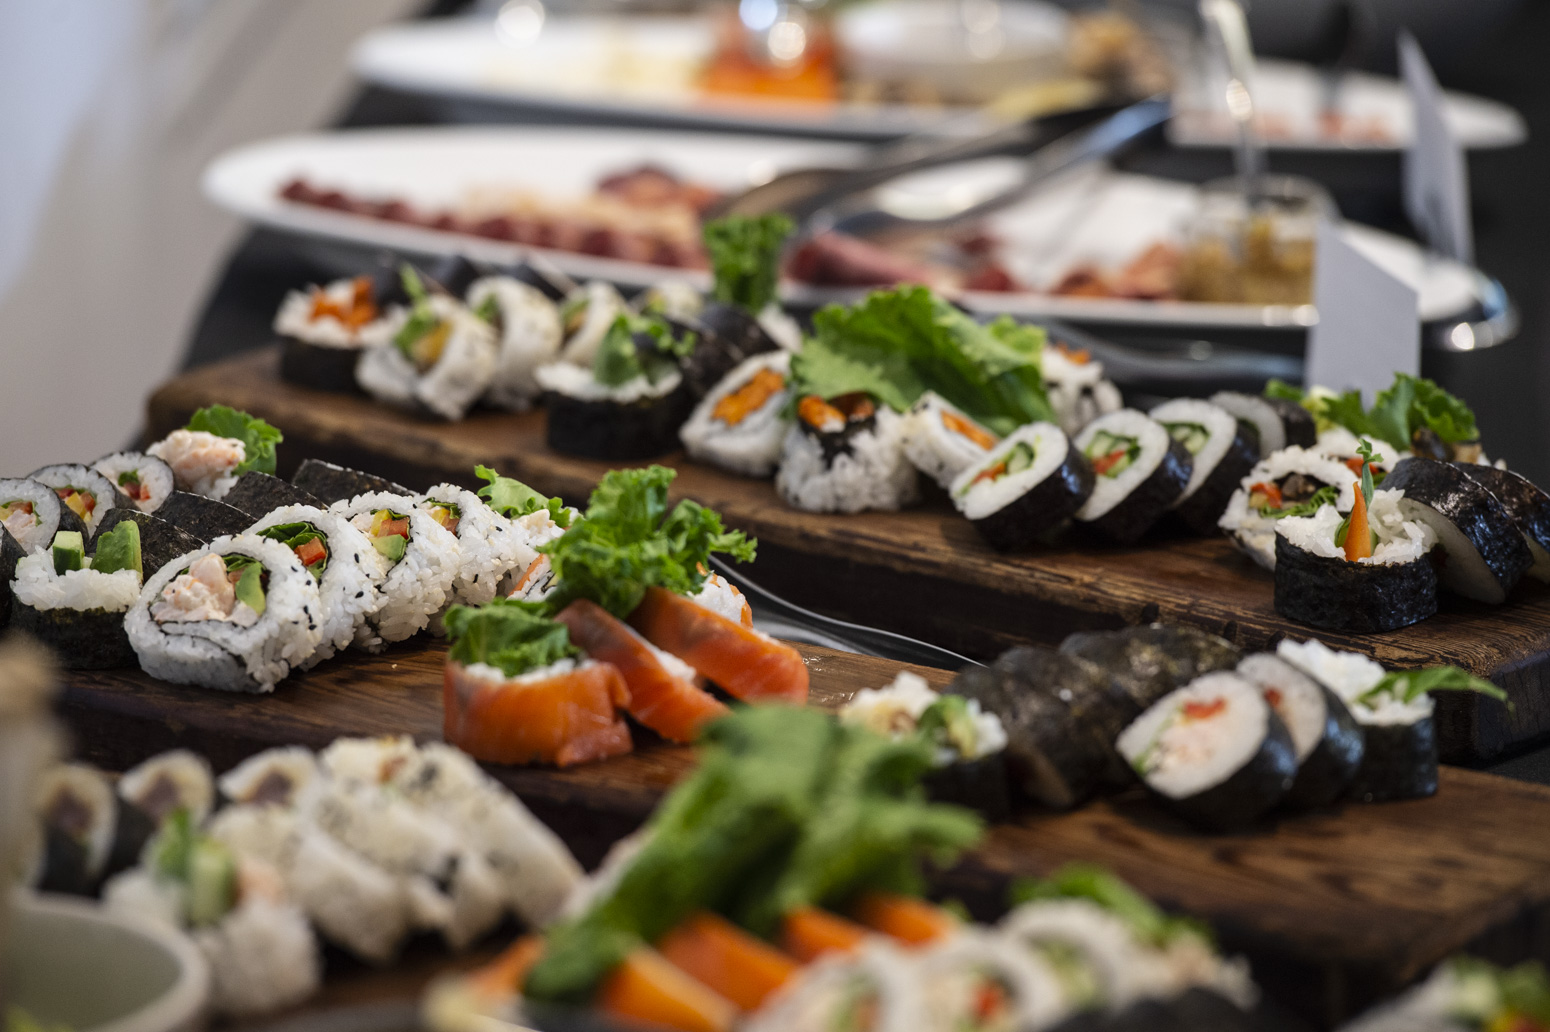 A variety of sushi